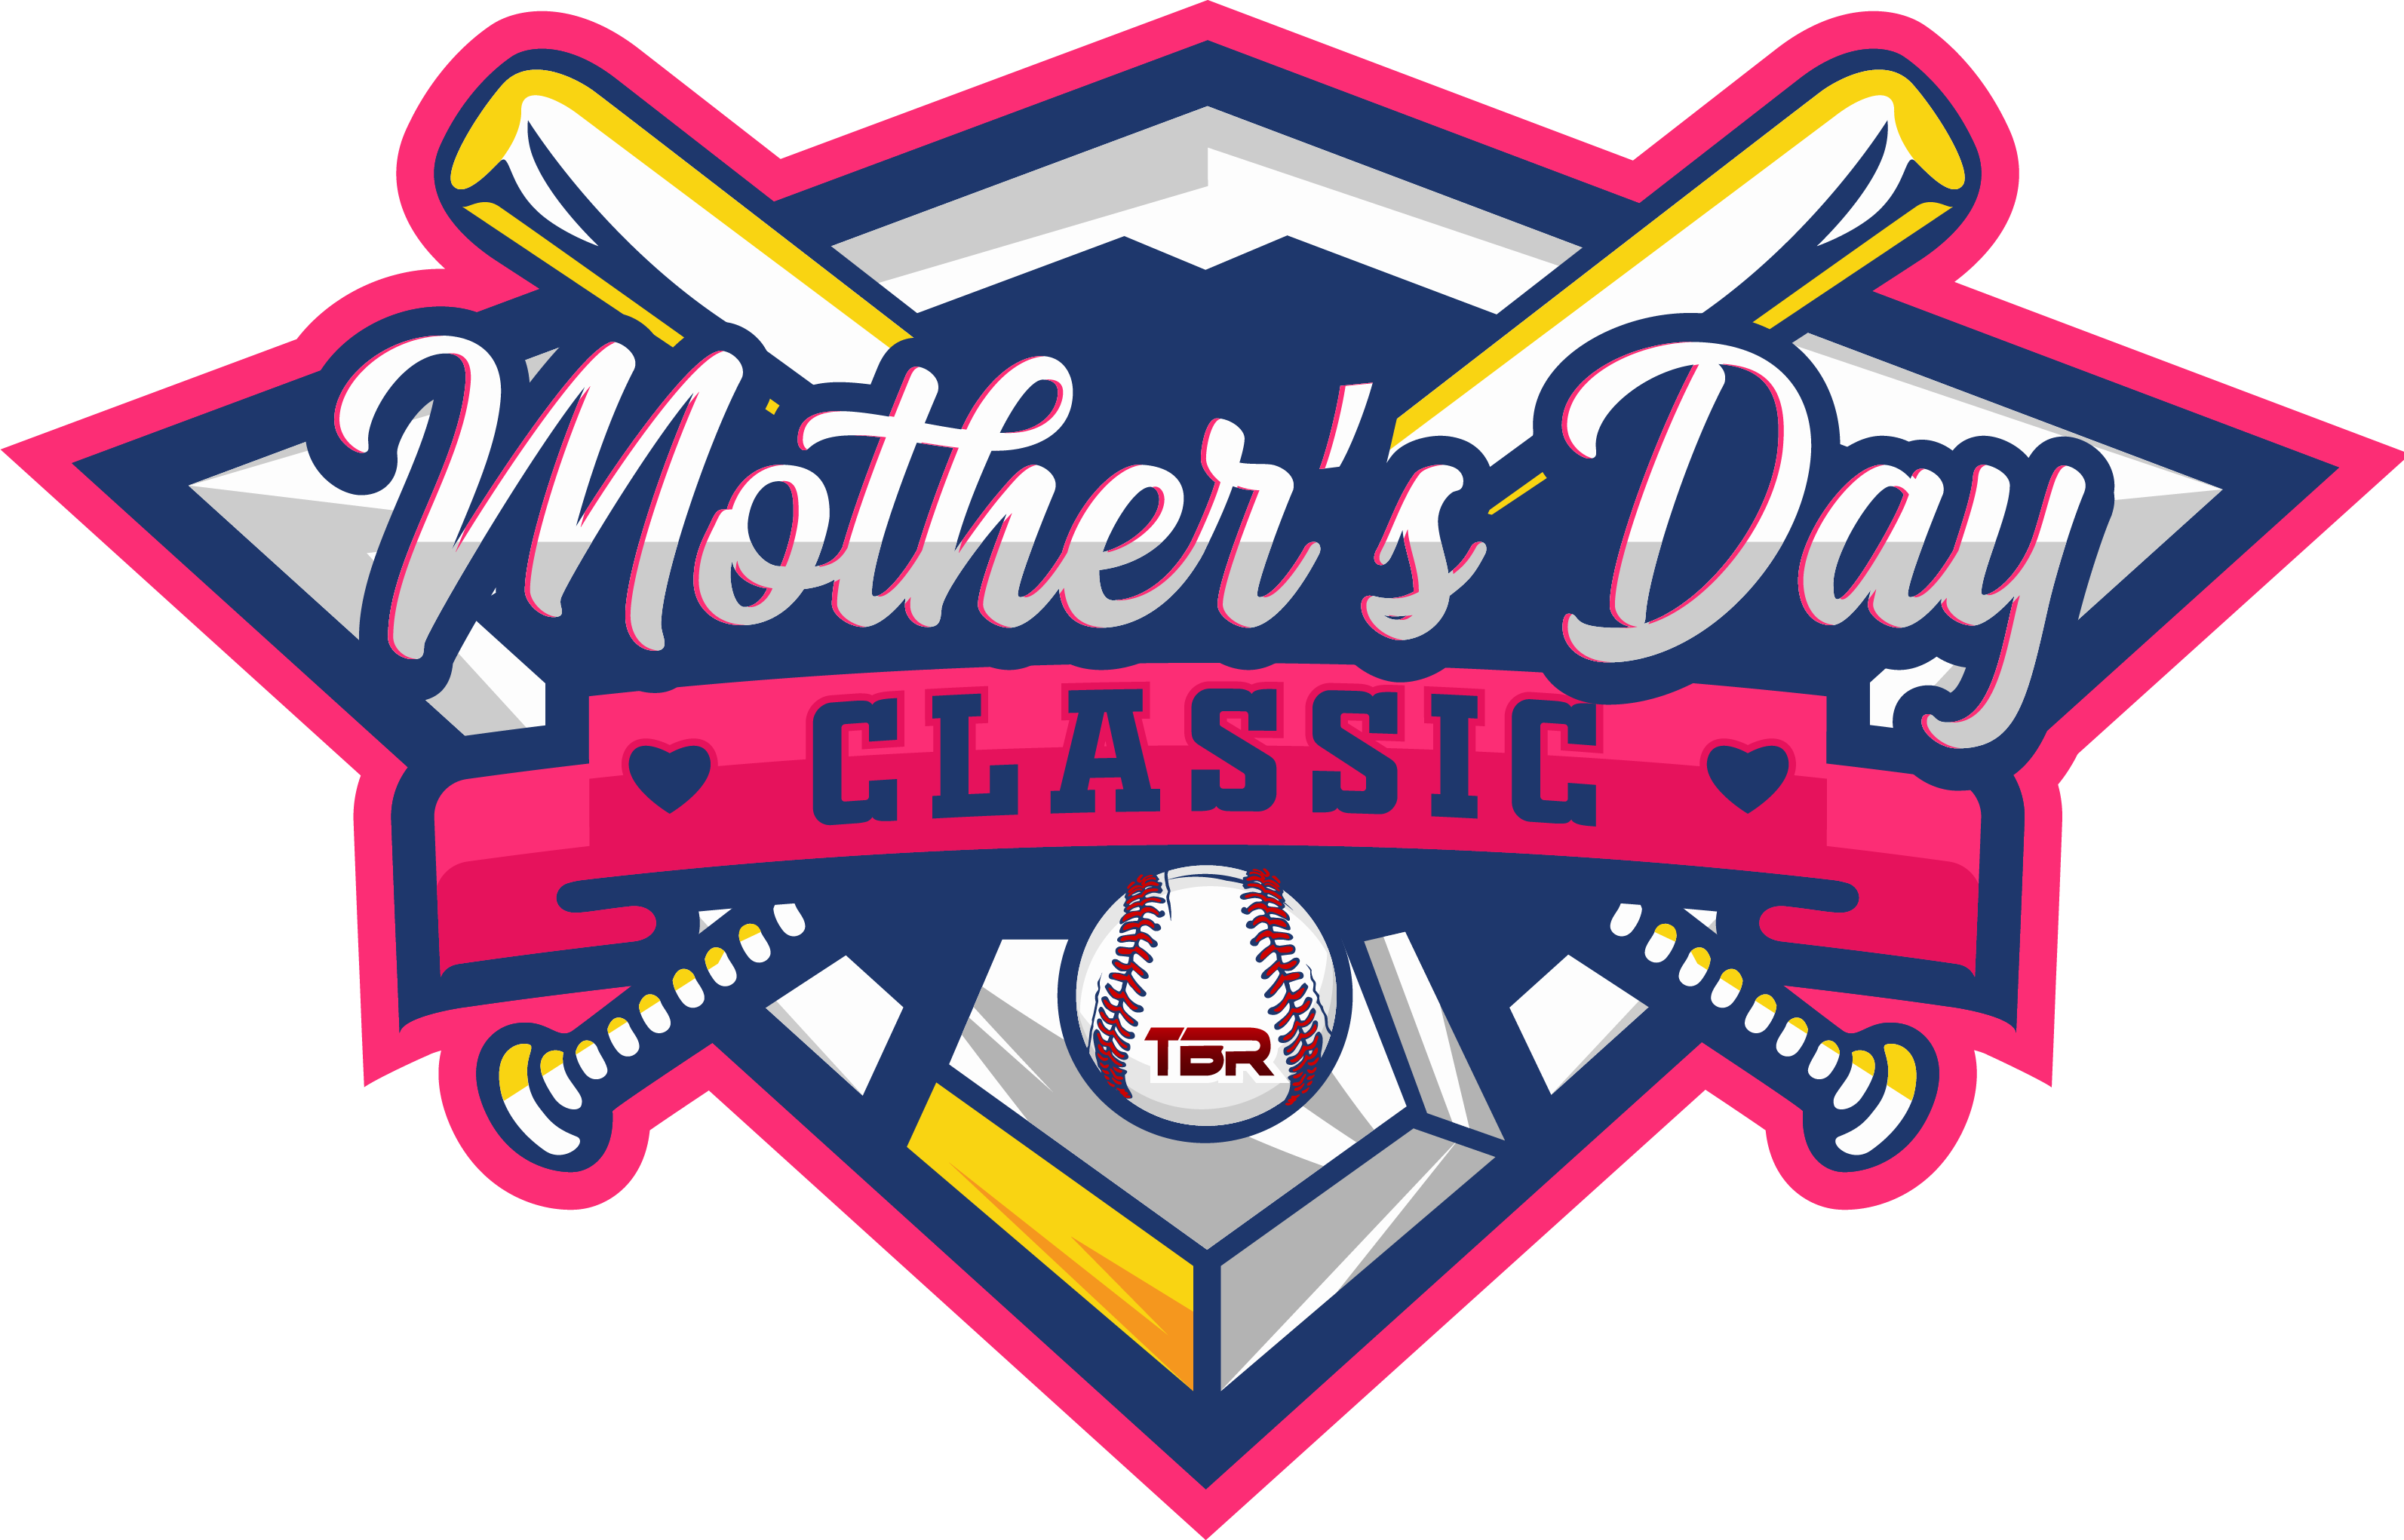 TBR Mother's Day Classic